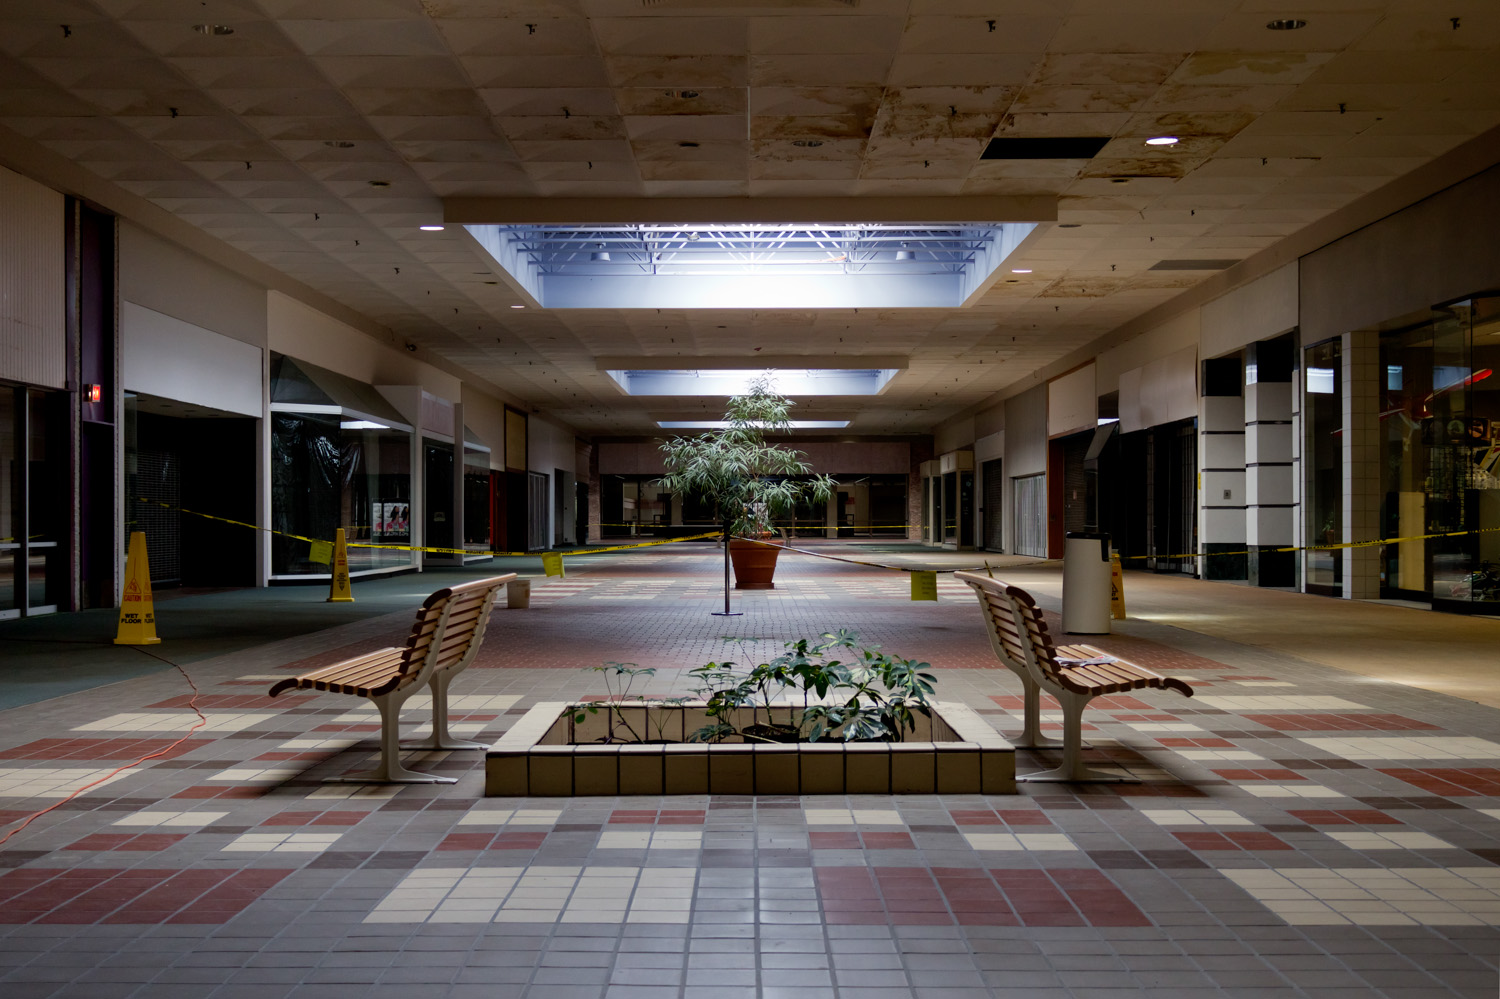 07 Woodville Mall 01.jpg